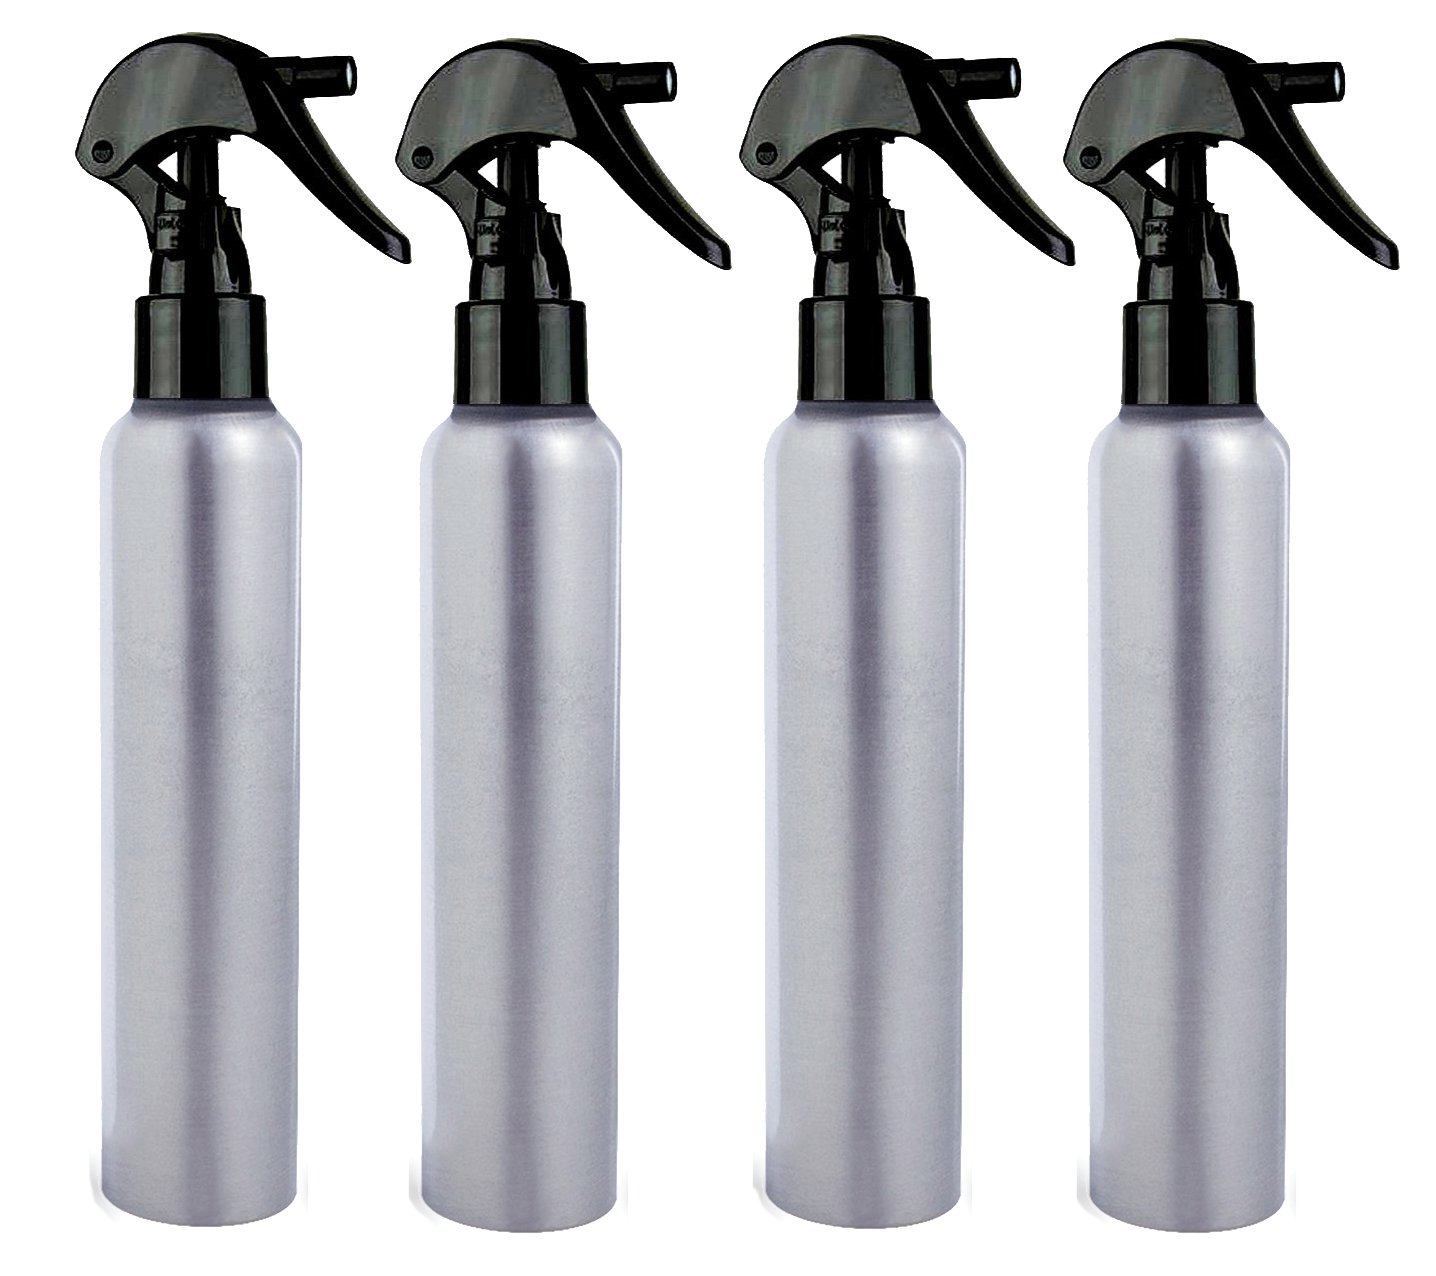 All Aluminum Spray Bottles 4 oz Mister with Fine Mist Black Trigger Sprayer, 4-Pack with Different Choice of Tops & Free Perfume Studio Sample Fragrance (4oz, Black Trigger Sprayer)